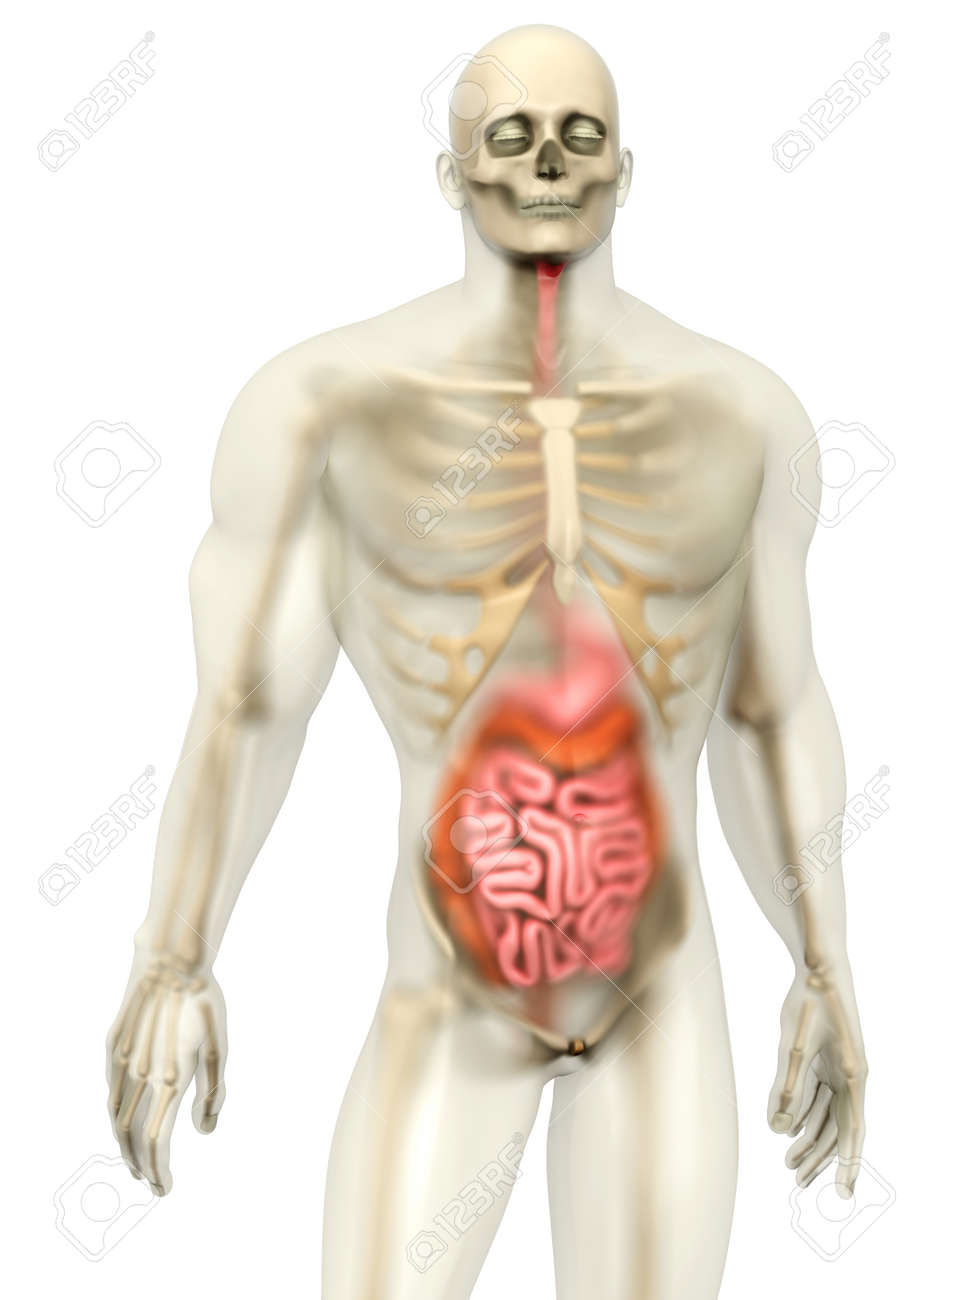 3d Visualization Of The Human Anatomy The Digestive System In